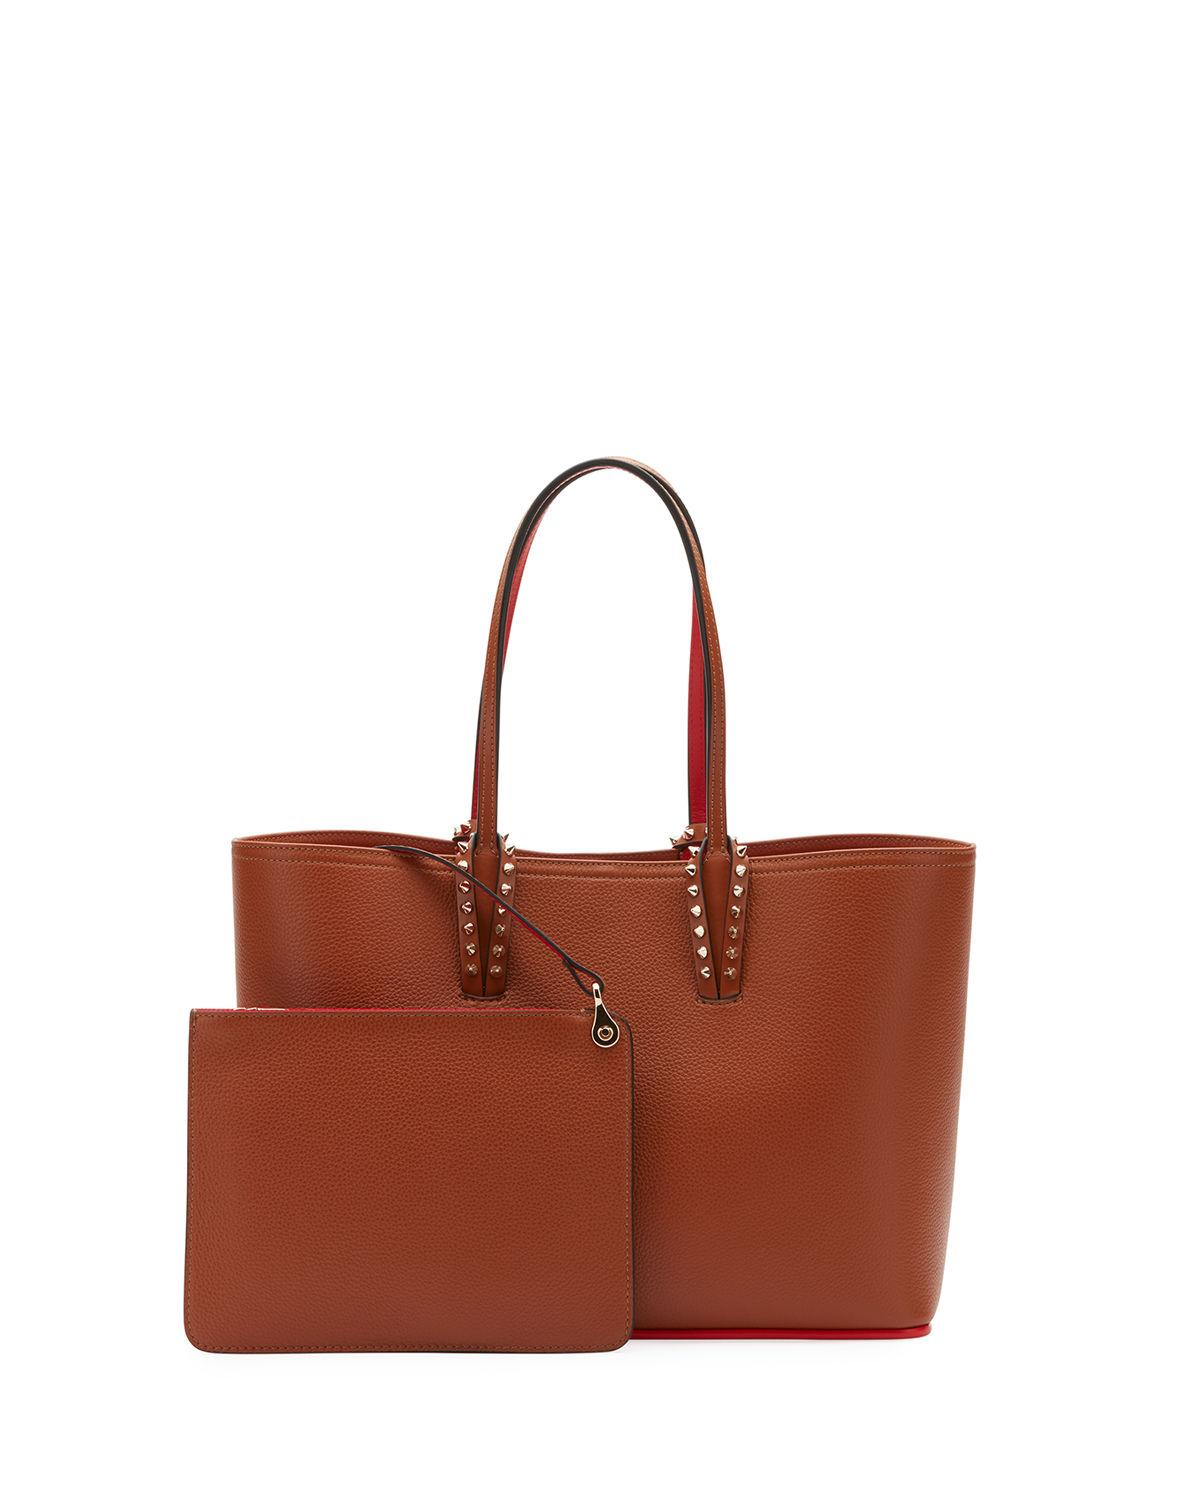 d934f6f36fd Lyst - Christian Louboutin Cabata Small Empire Paris Tote Bag in Brown